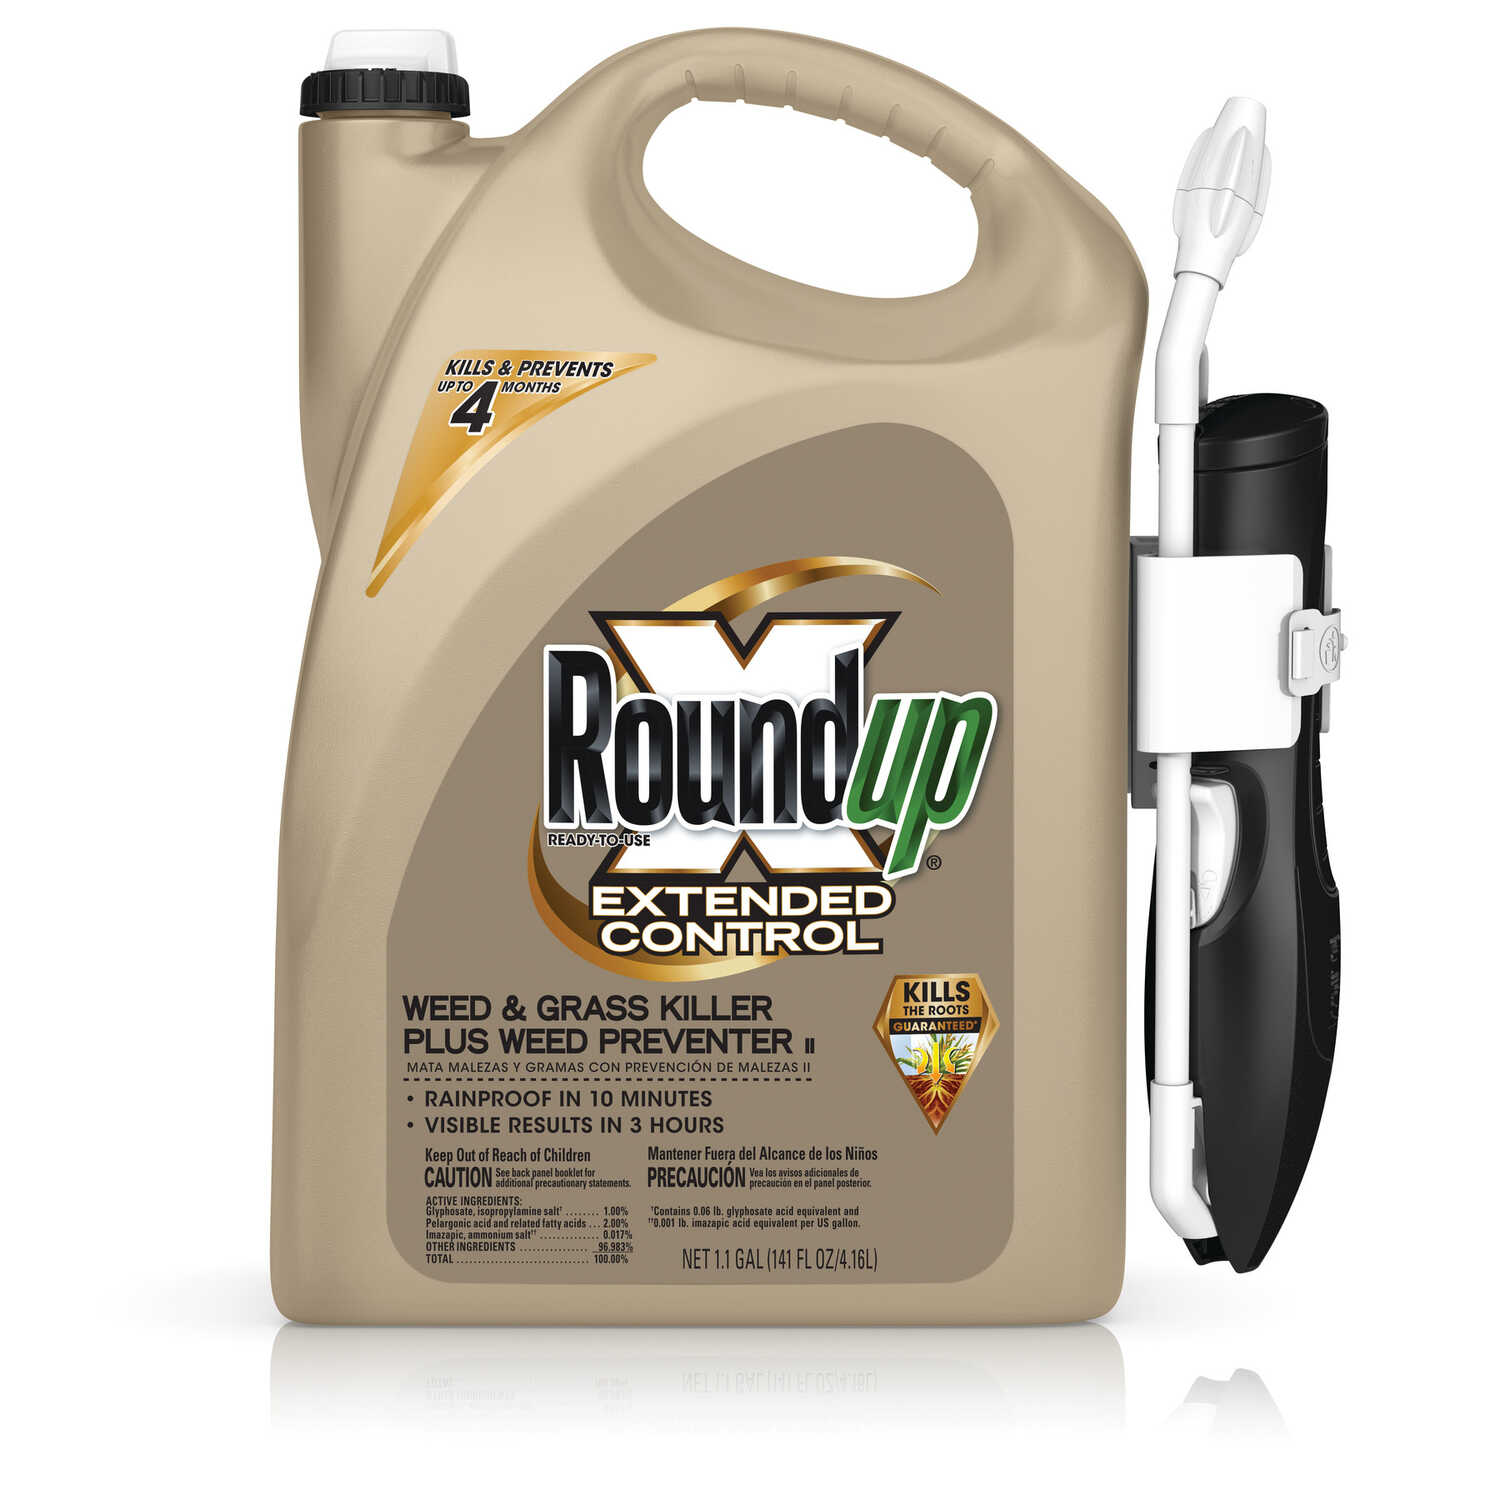 Roundup  Extended Control  RTU Liquid  Weed and Grass Killer  1.1 gal.